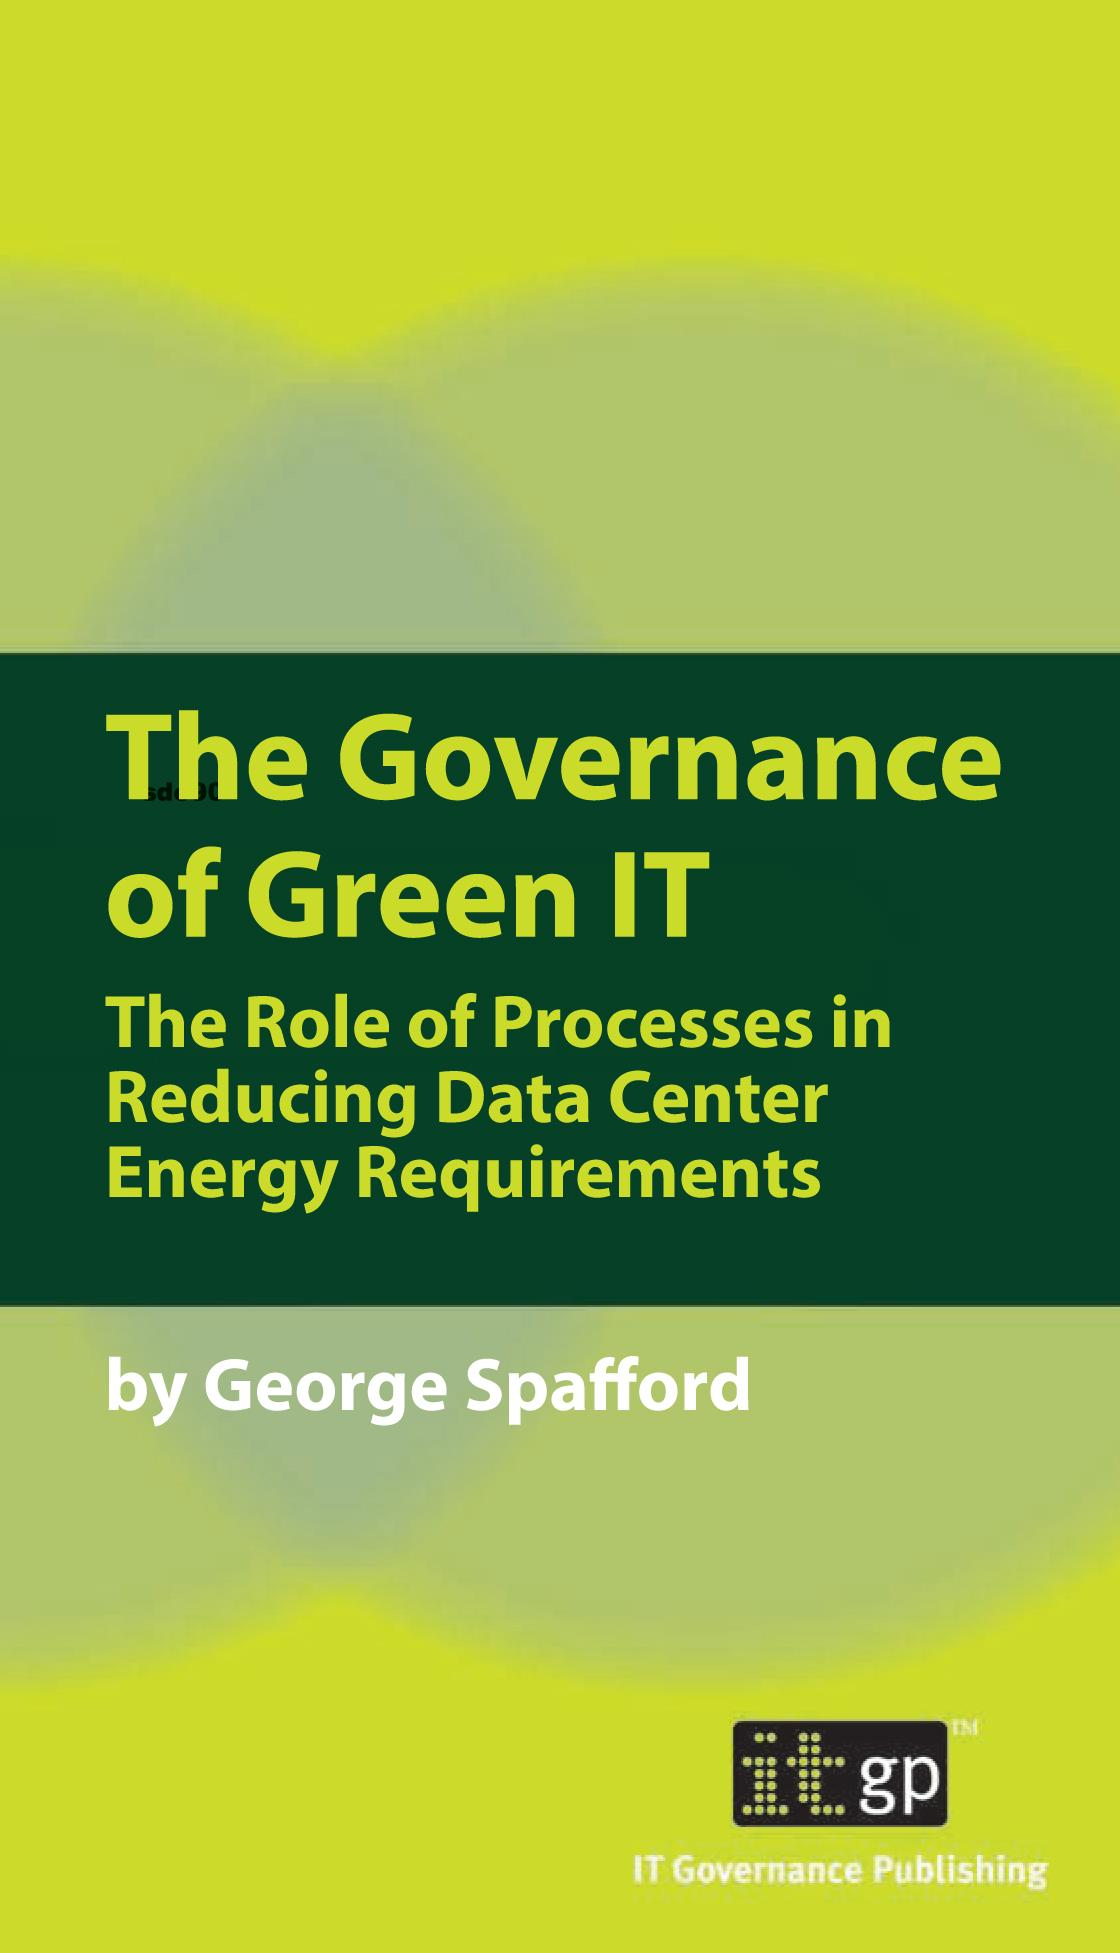 Governance of Green IT, The EB9781905356751